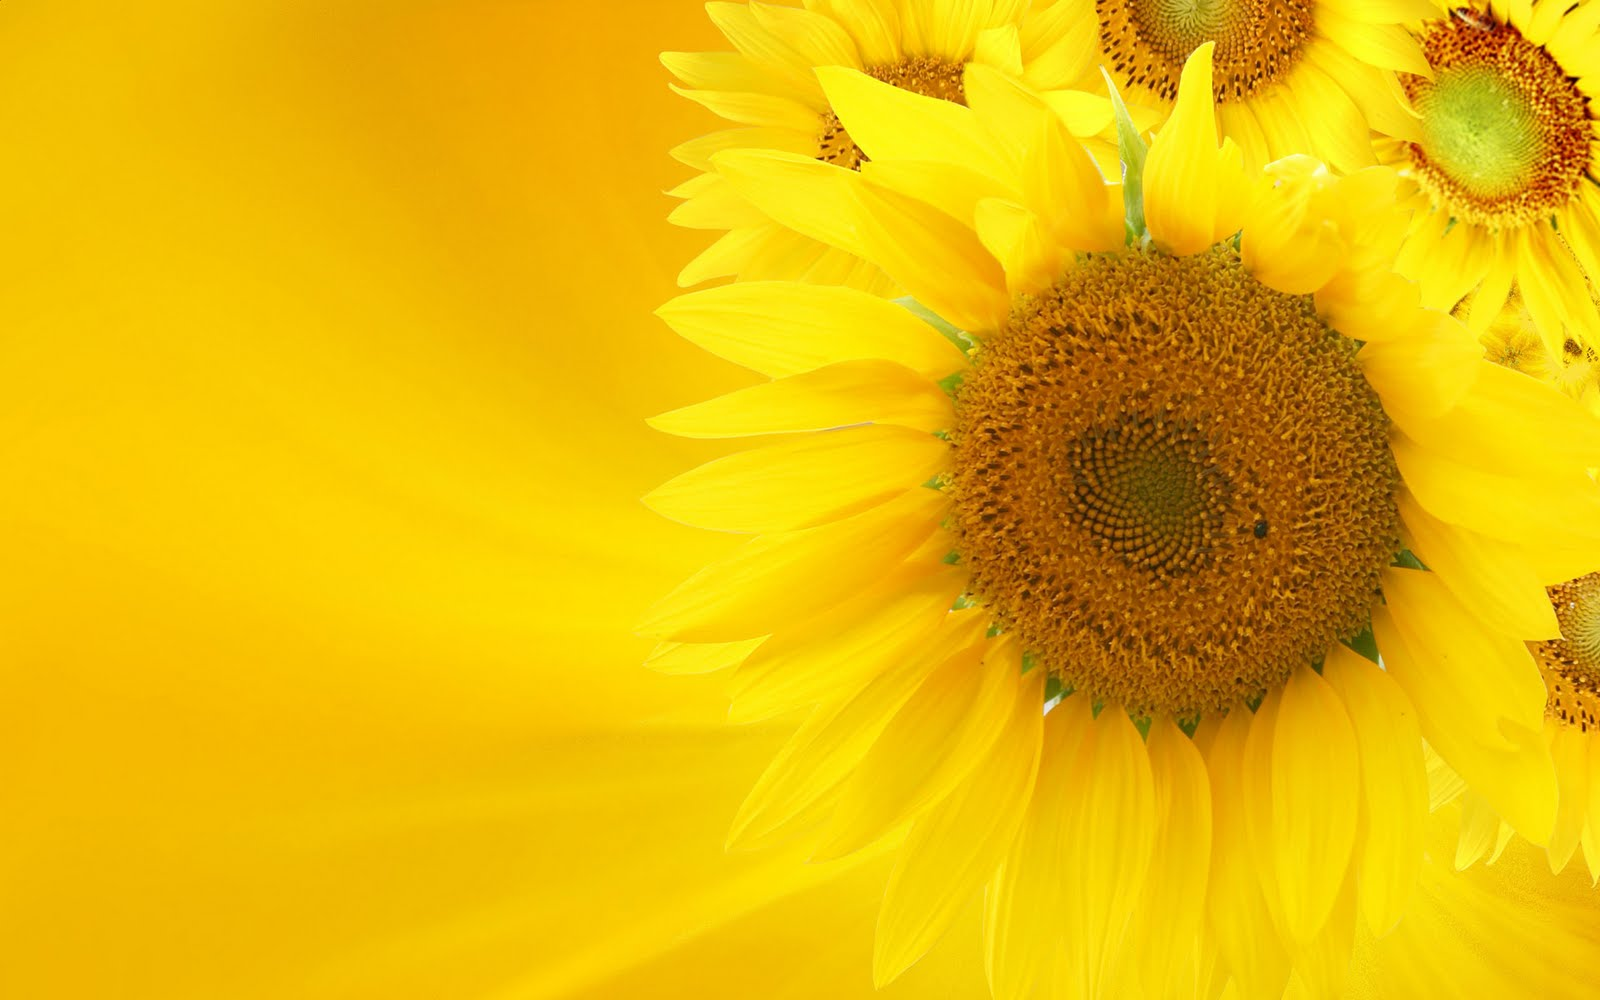 wallpaper: Sunflower wallpaper